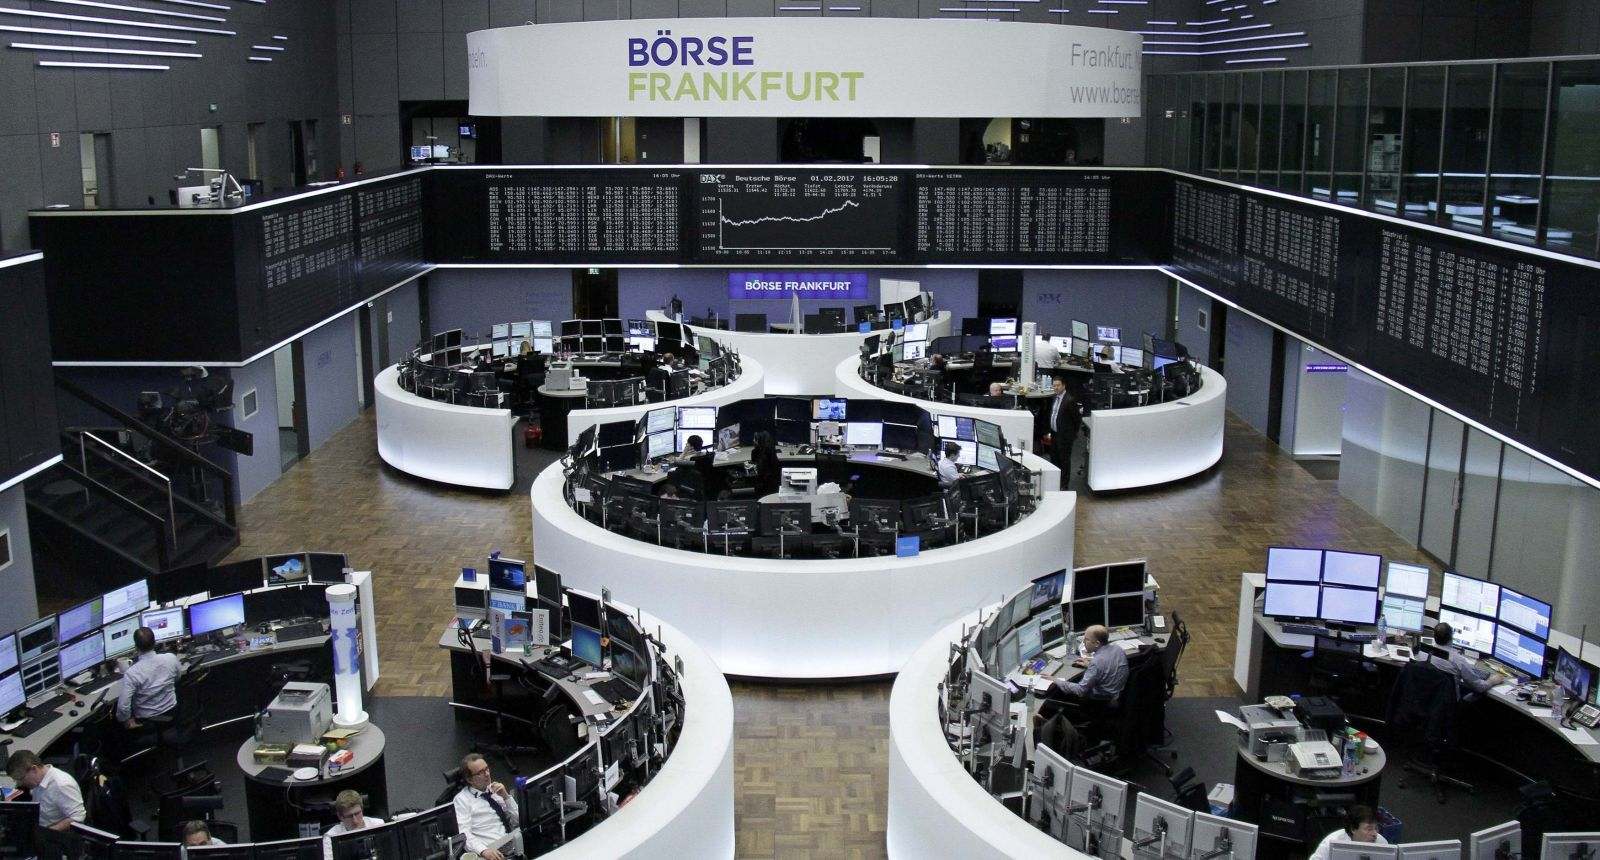 Europe: Shares climb to 14-month high on positive surveys, HSBC